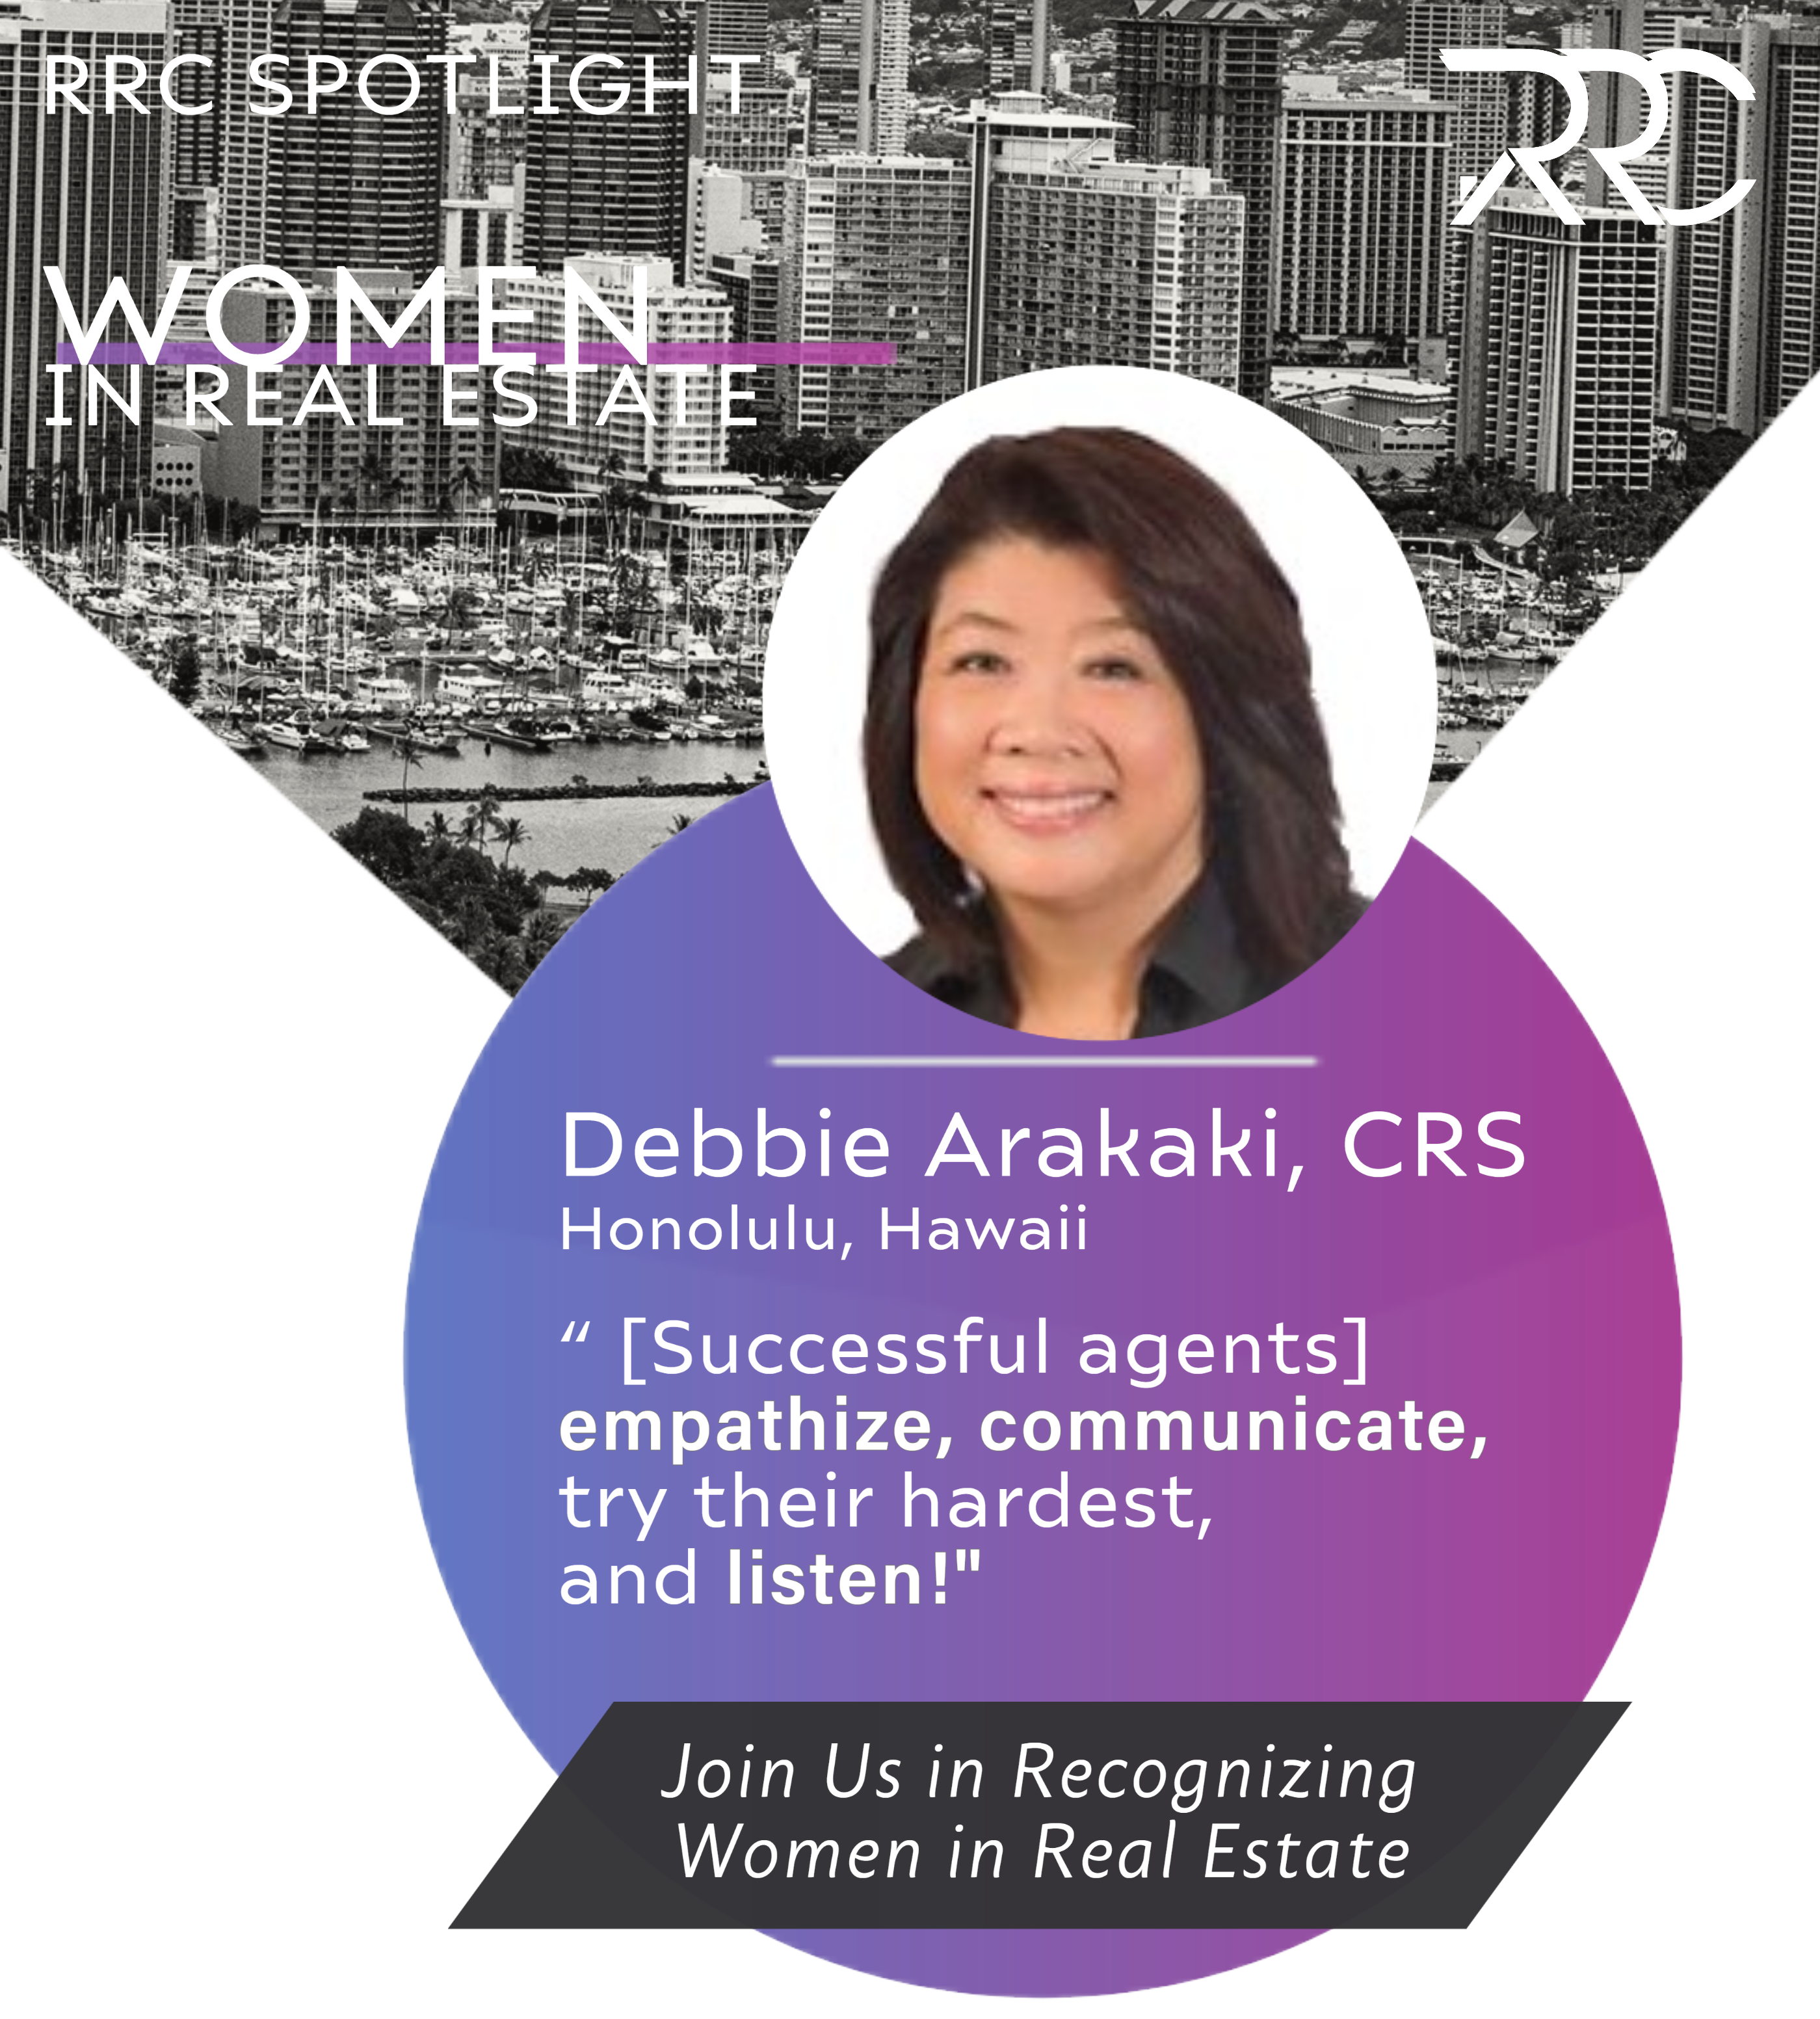 RRC Women in Real Estate Celebrates Debbie Arakaki